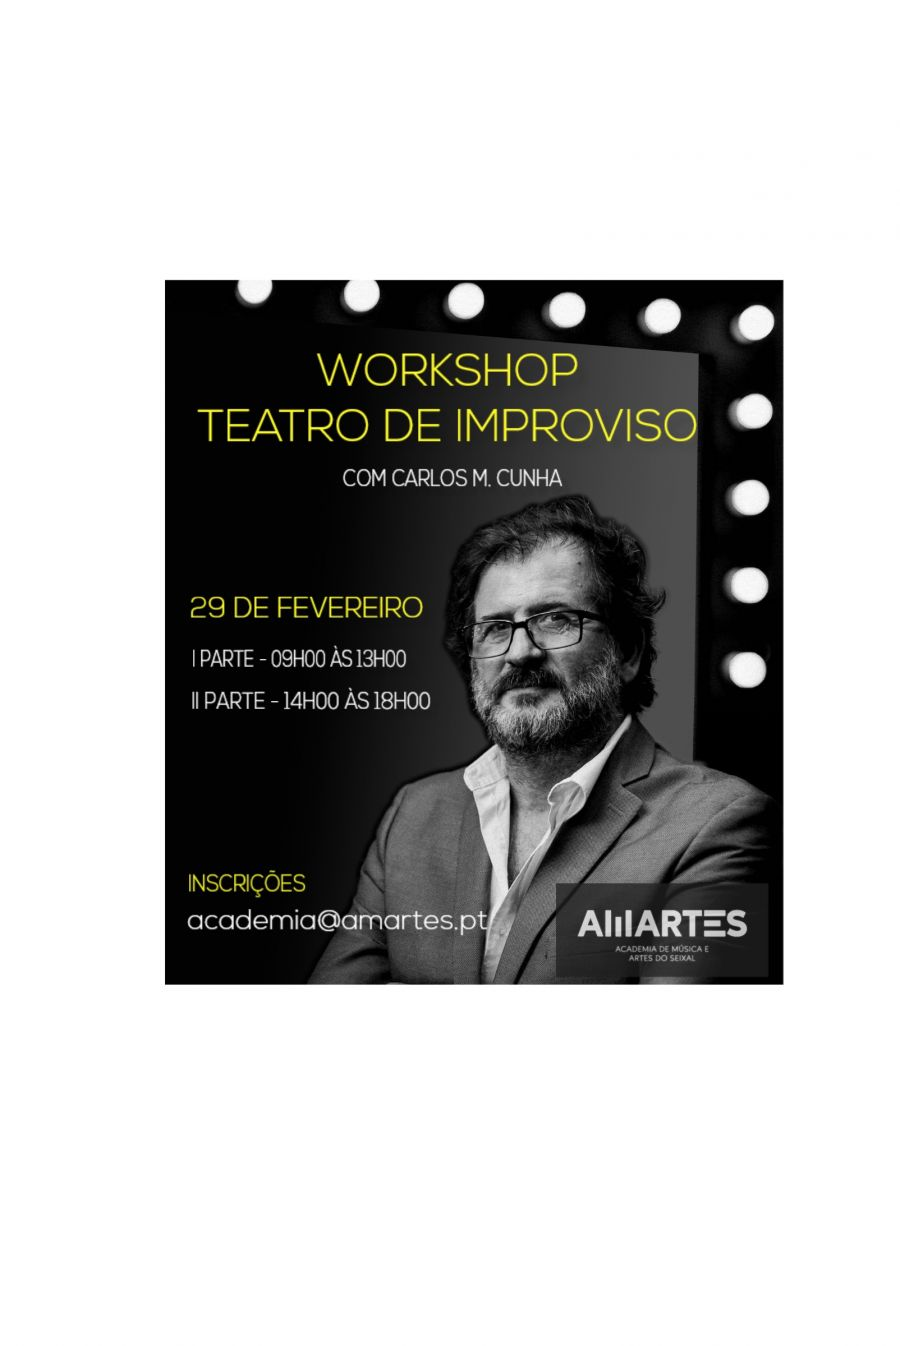 Workshop Teatro de Improviso